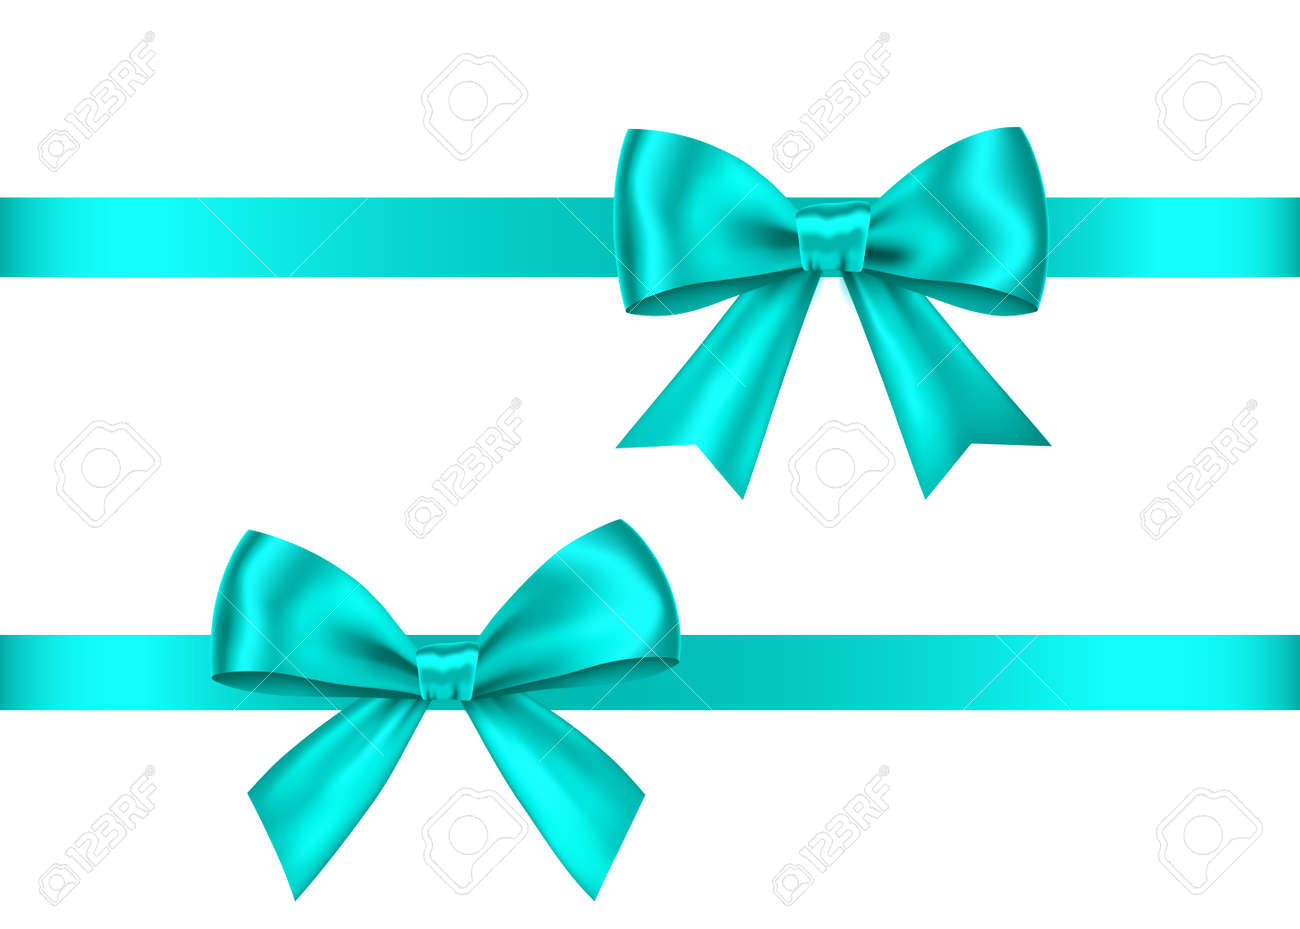 Blue gift bows set isolated on white background. Christmas, New Year, birthday decoration. Vector realistic decor element for banner, greeting card, poster. - 120490678